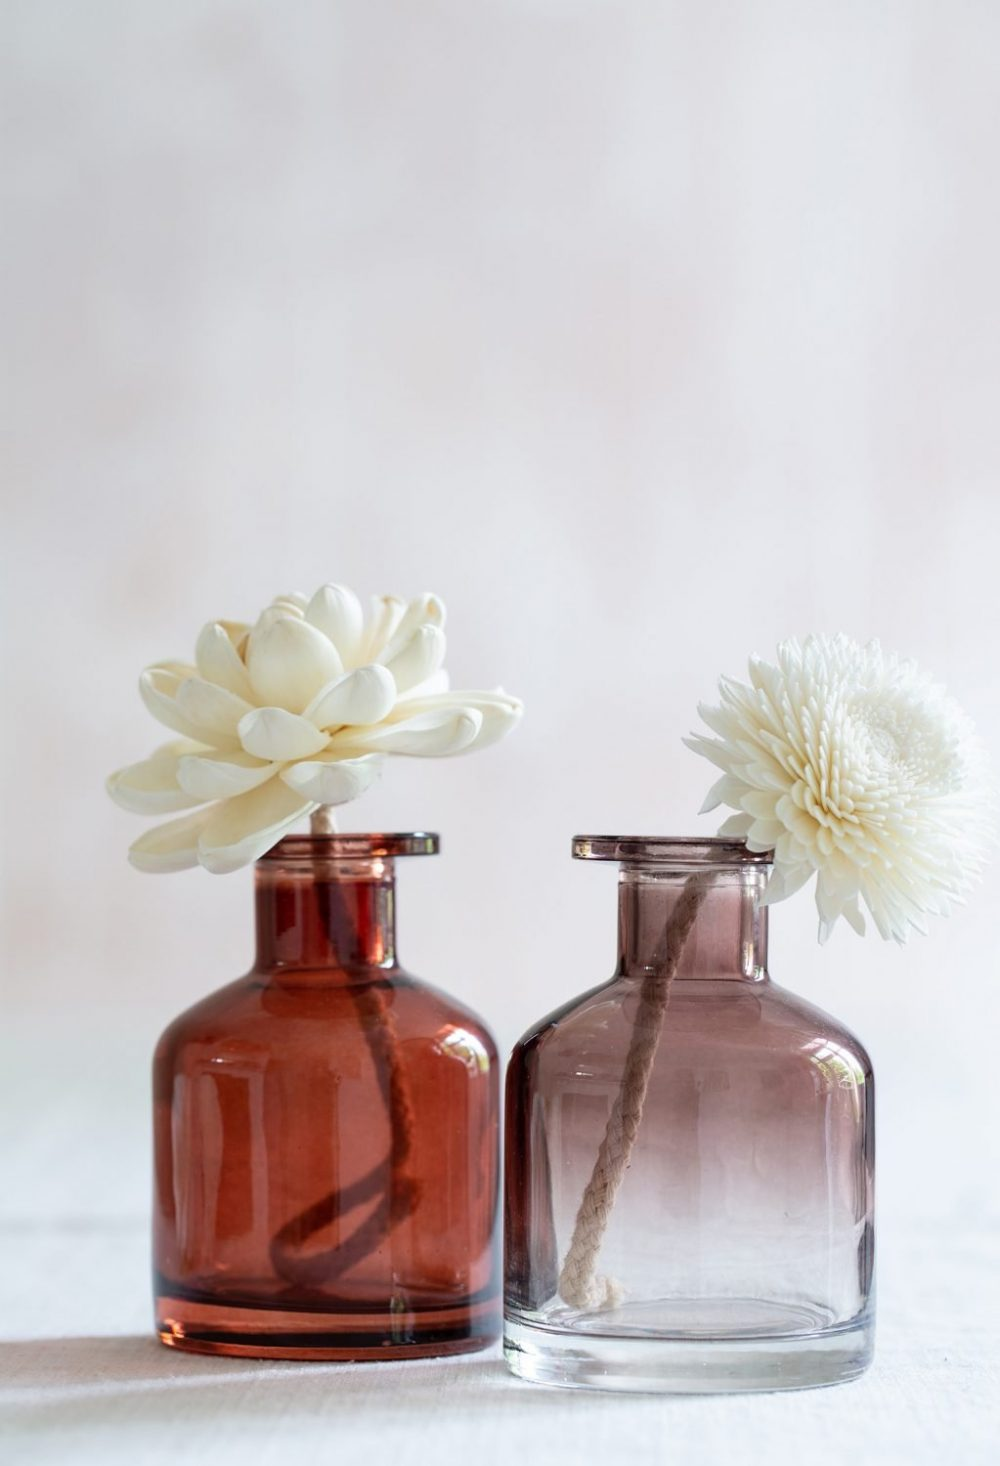 Amber apothecary diffuser bottles